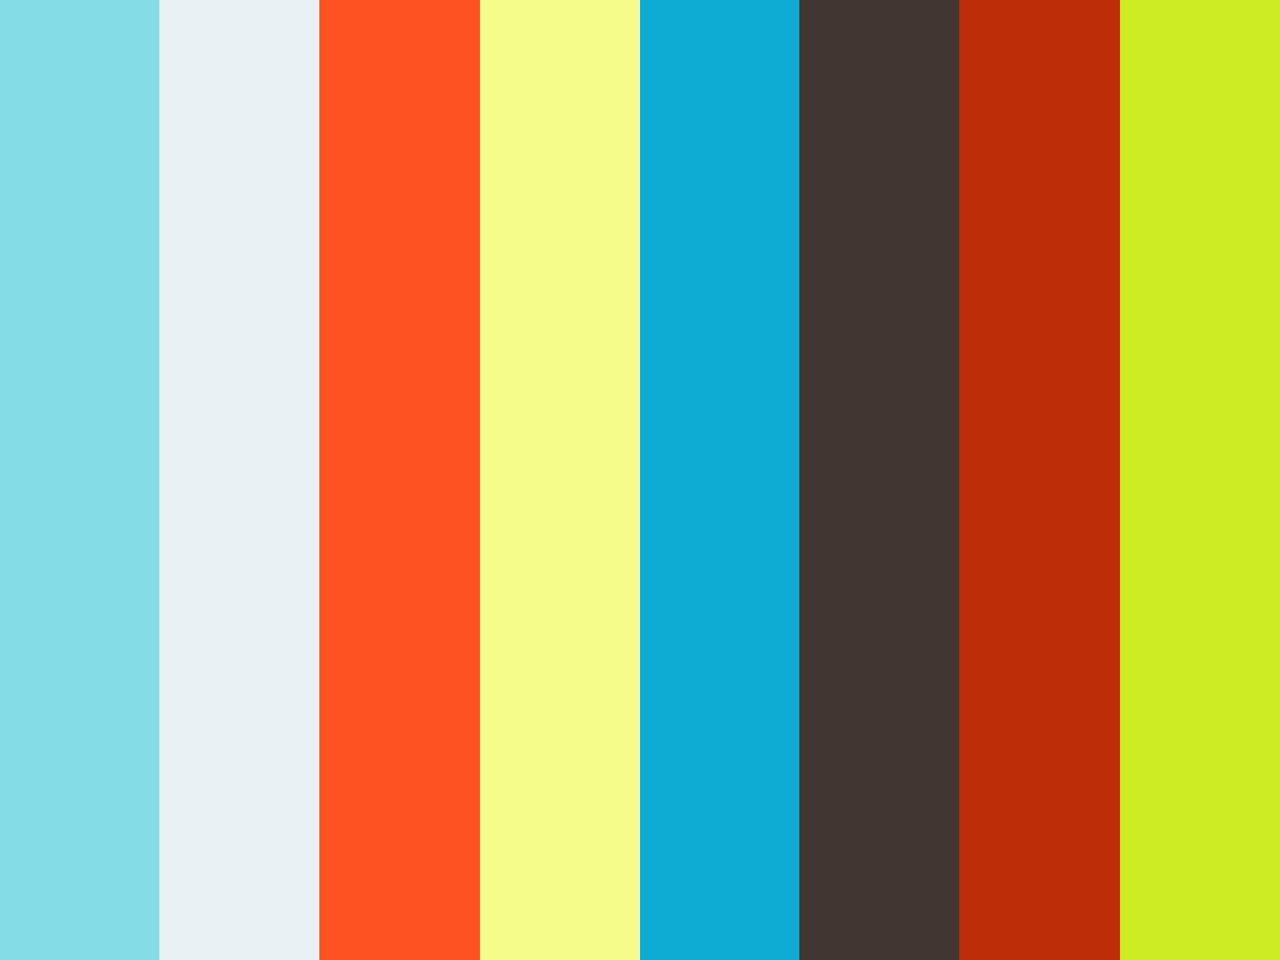 113 Branding Red Carpet TV Web Series Featuring Nikki Rausch